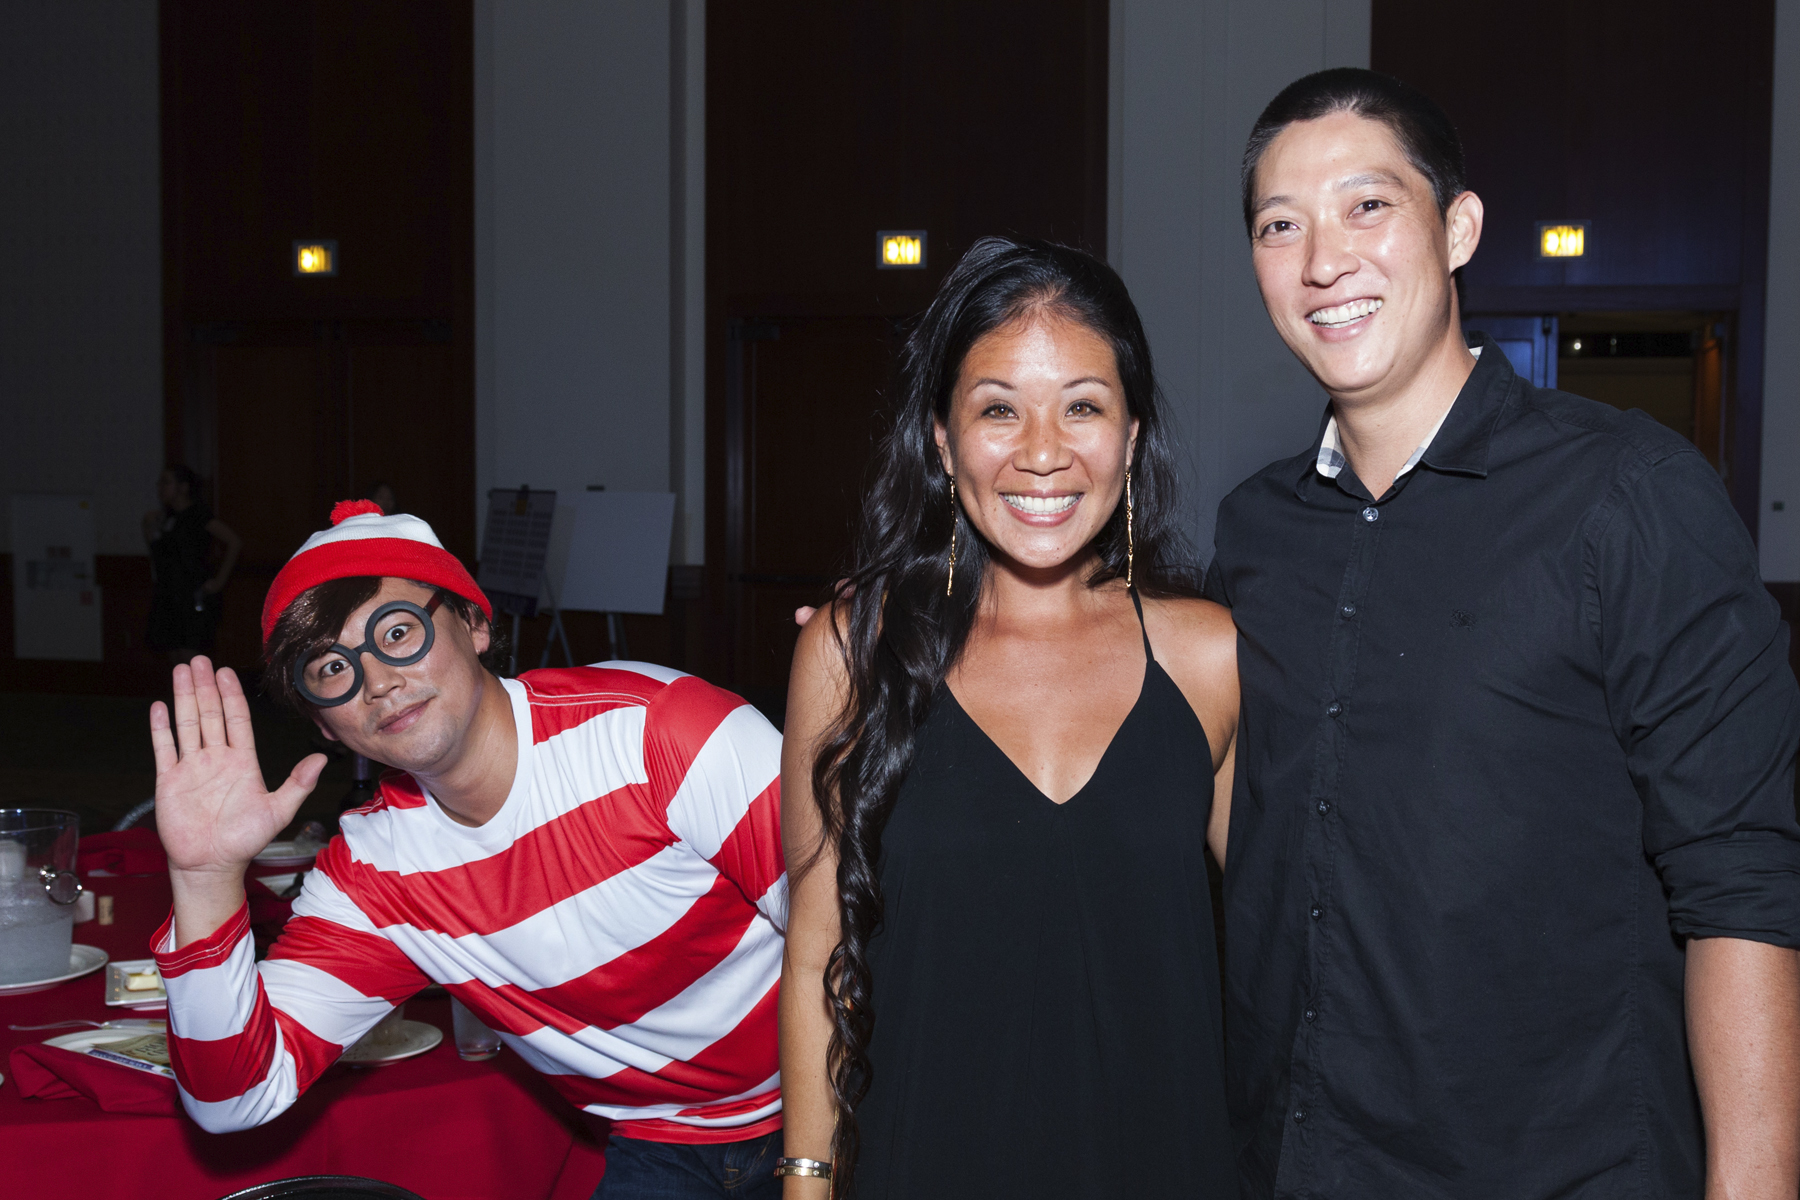 2016 AN EVENING AROUND THE WORLD: Waldo spotted again!